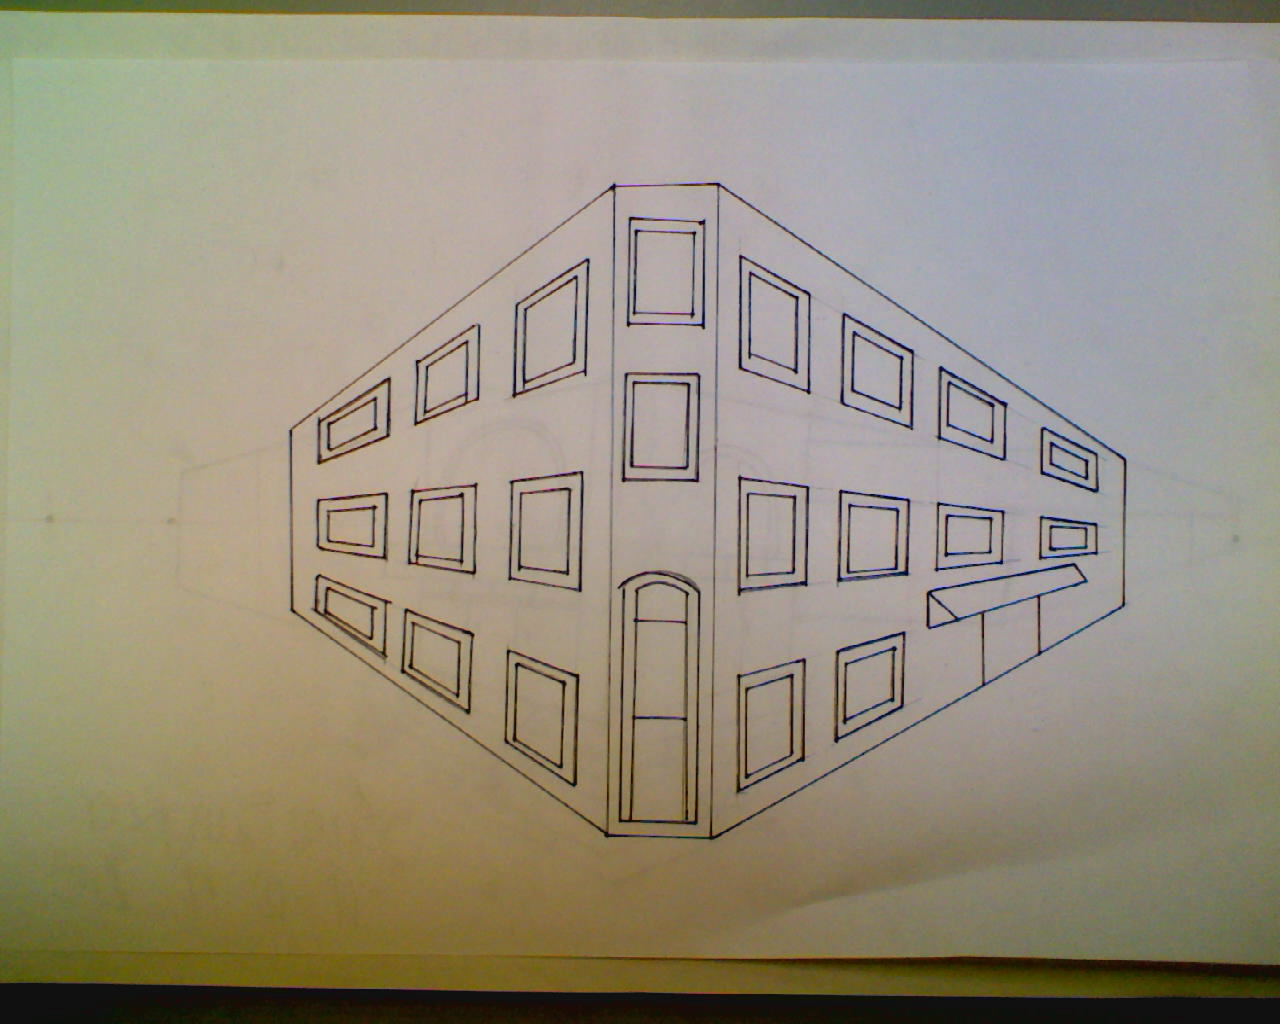 1280x1024 Sam Sangster Two Point Perspective City Building Drawing